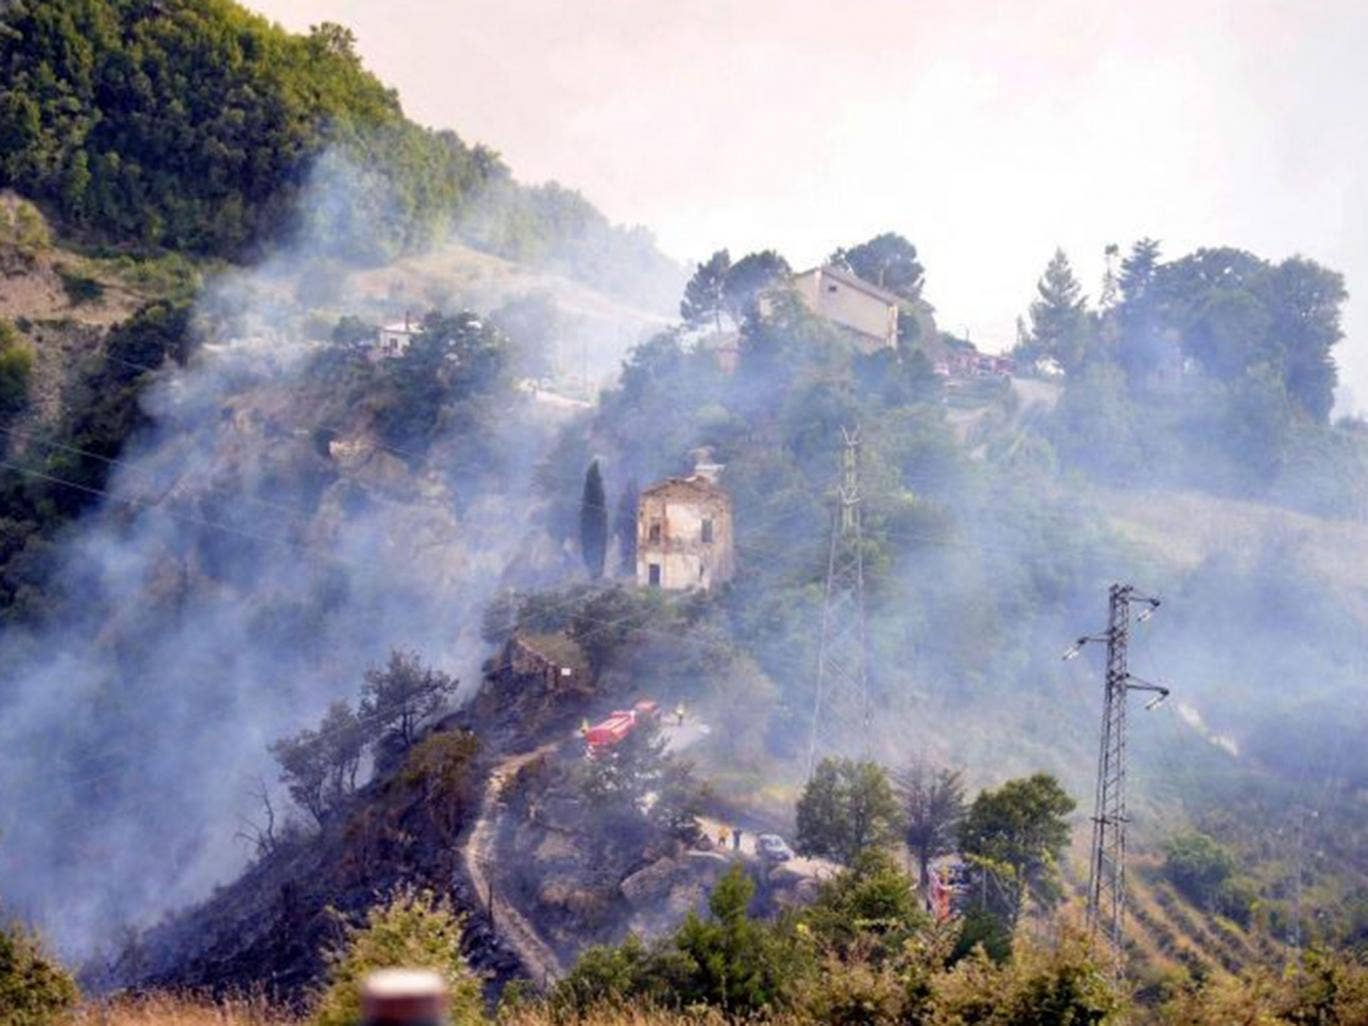 Firefighters at work after the collision of two Italian Air Force jets over the Marche region, Italy, 19 August 2014